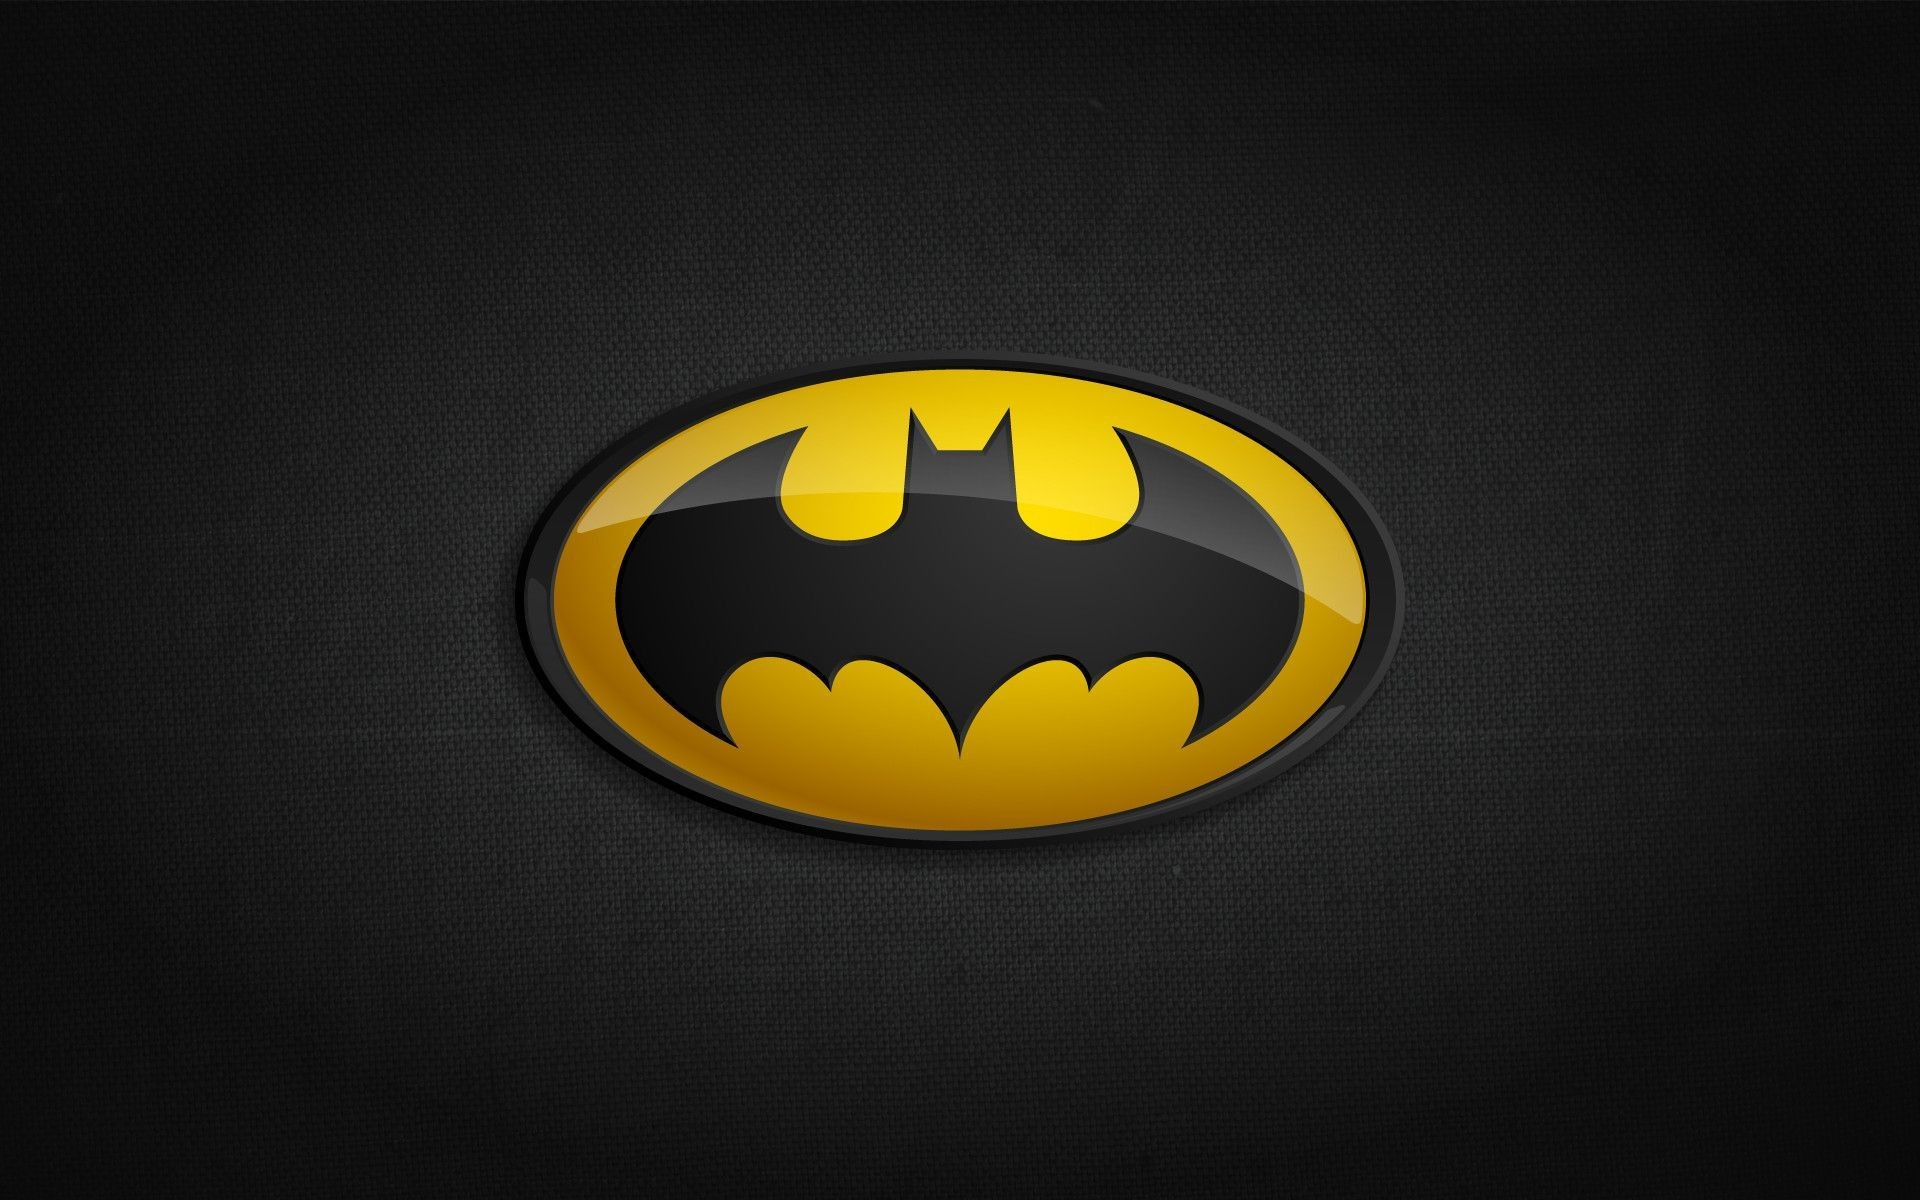 1920x1200 Batman Logo Wallpapers Wallpaper 1920×1200 Batman Logo Wallpapers (40  Wallpapers) | Adorable